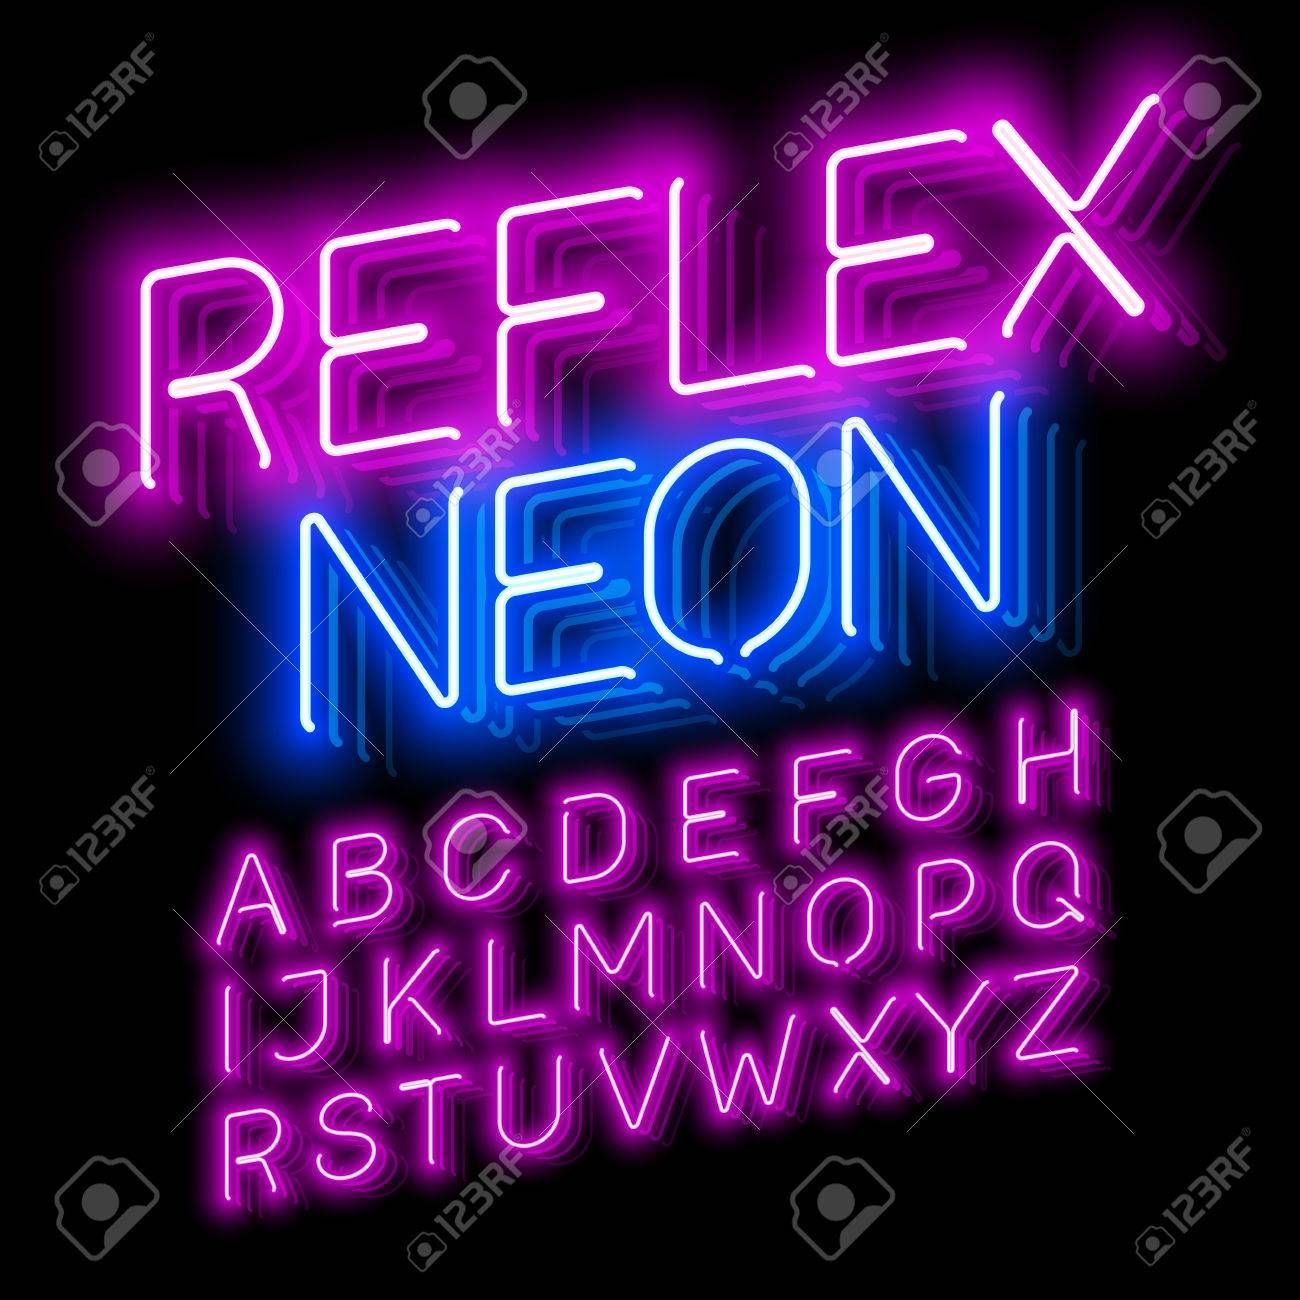 Pin By Moises On Still The One Neon Logo Fonts Neon Signs